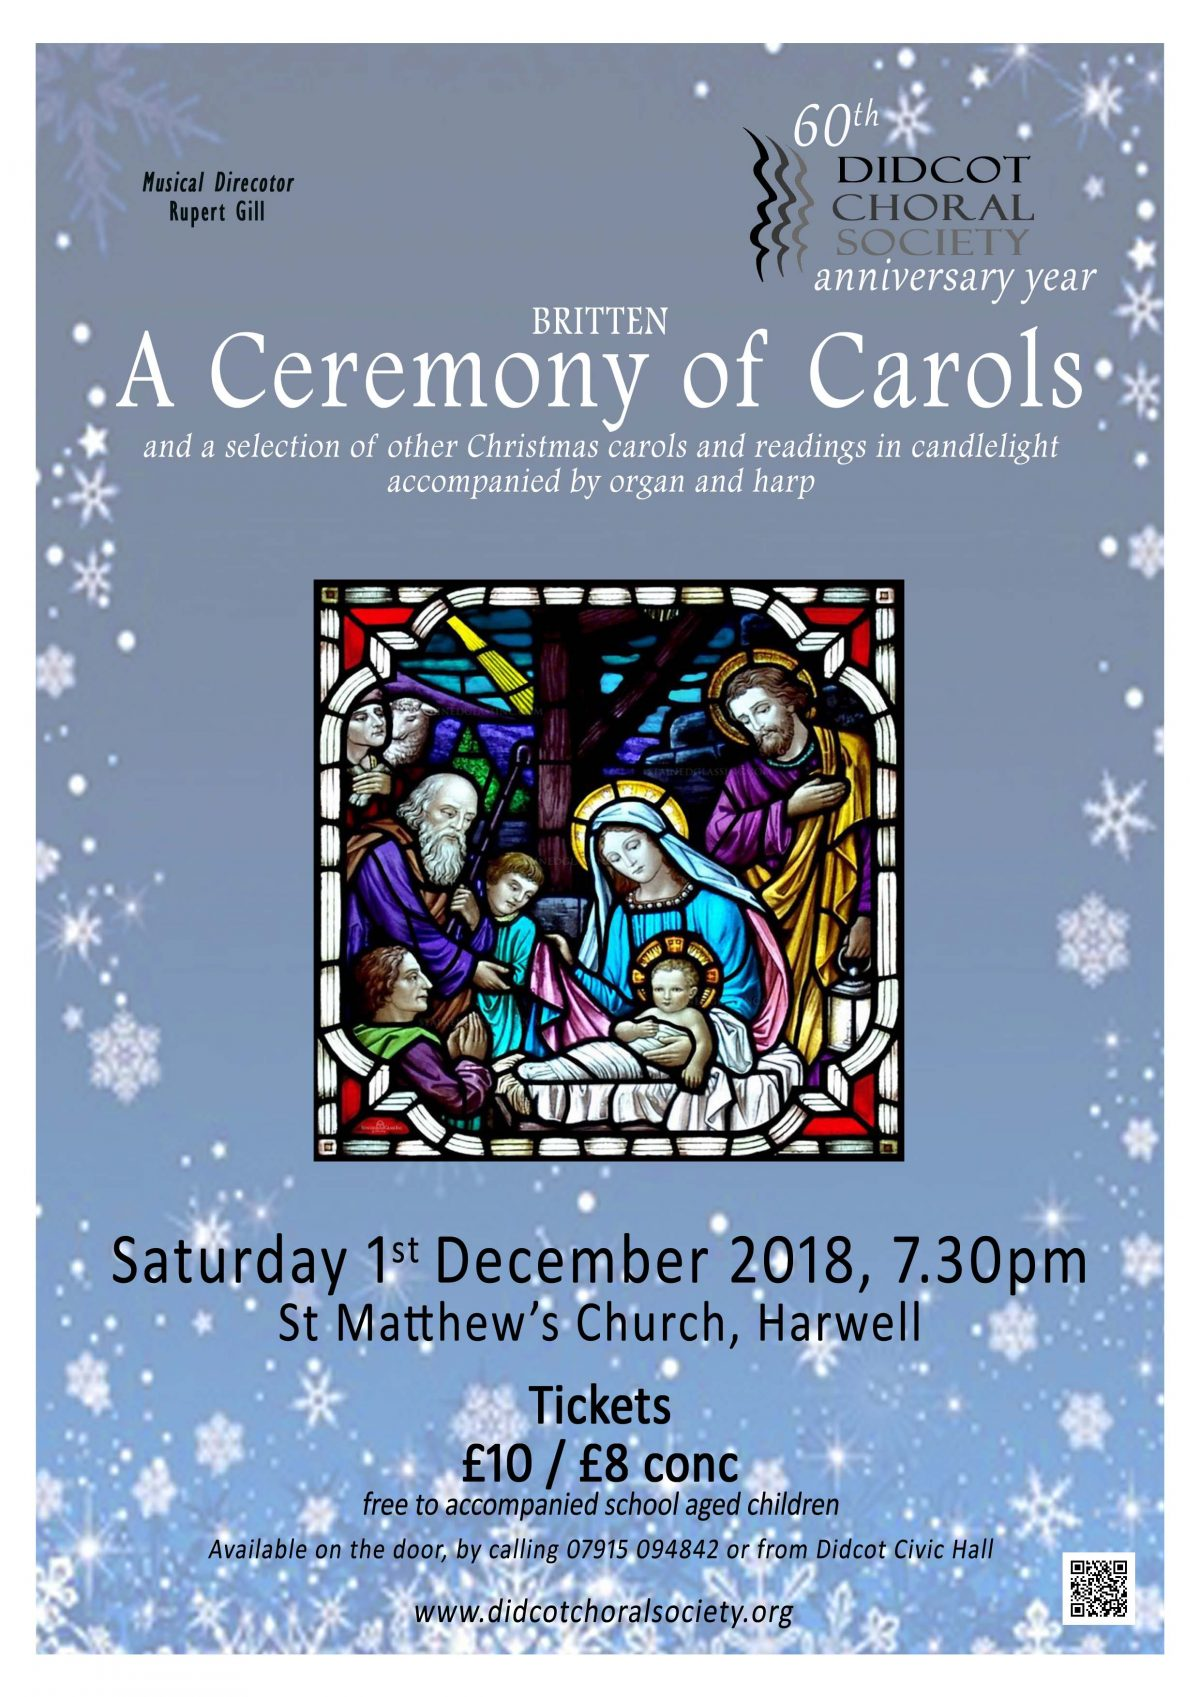 A Ceremony of Carols December 2018